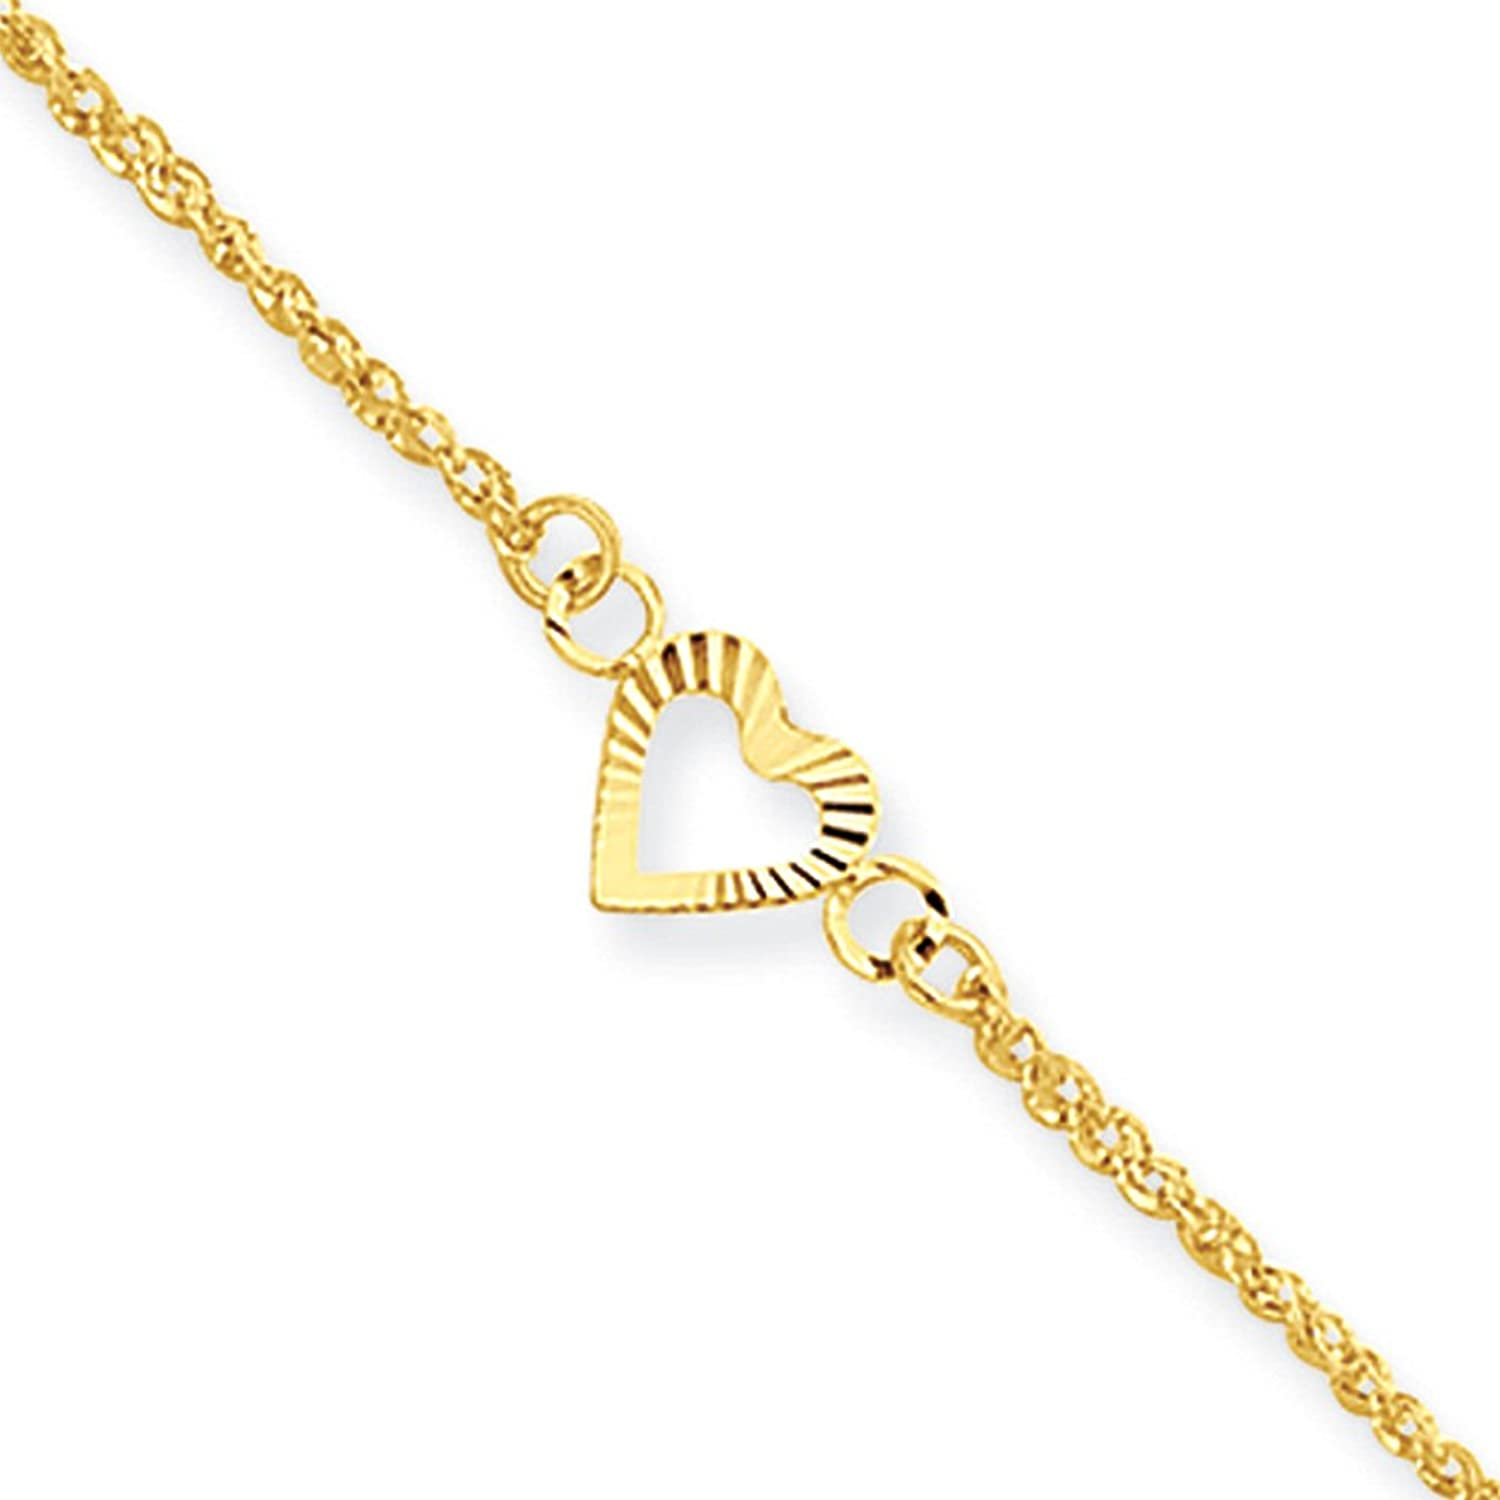 inch anklet carat hearts yellow amazon dp jewelry black bracelets com cut bow ankle diamond gold